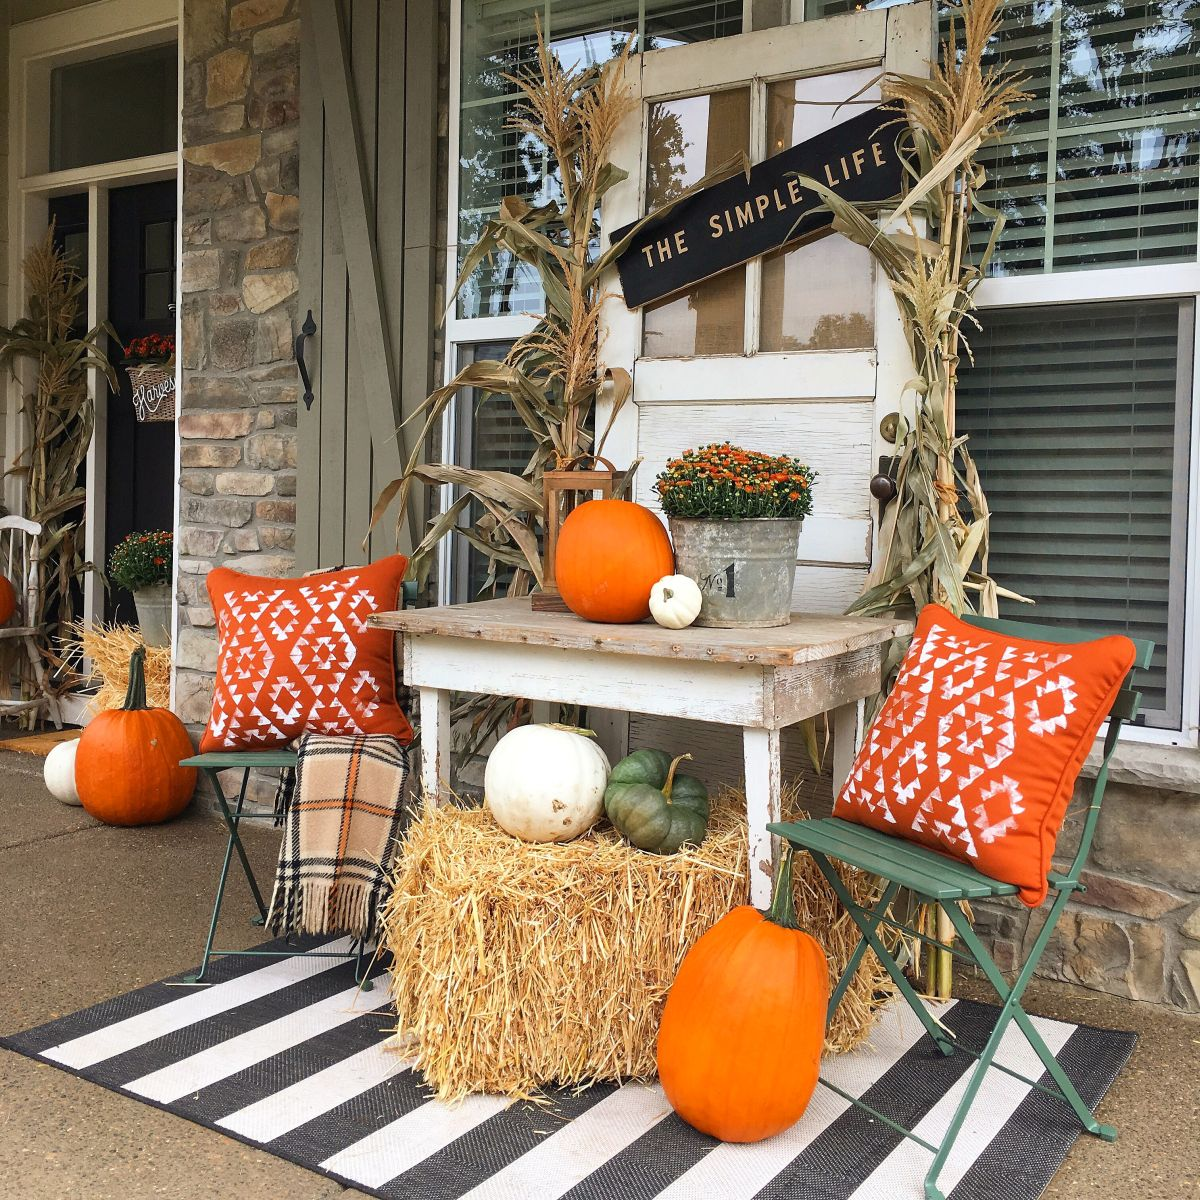 Autumn Yard Decorations: A Bountiful Collection Of Outdoor Fall Decor Ideas